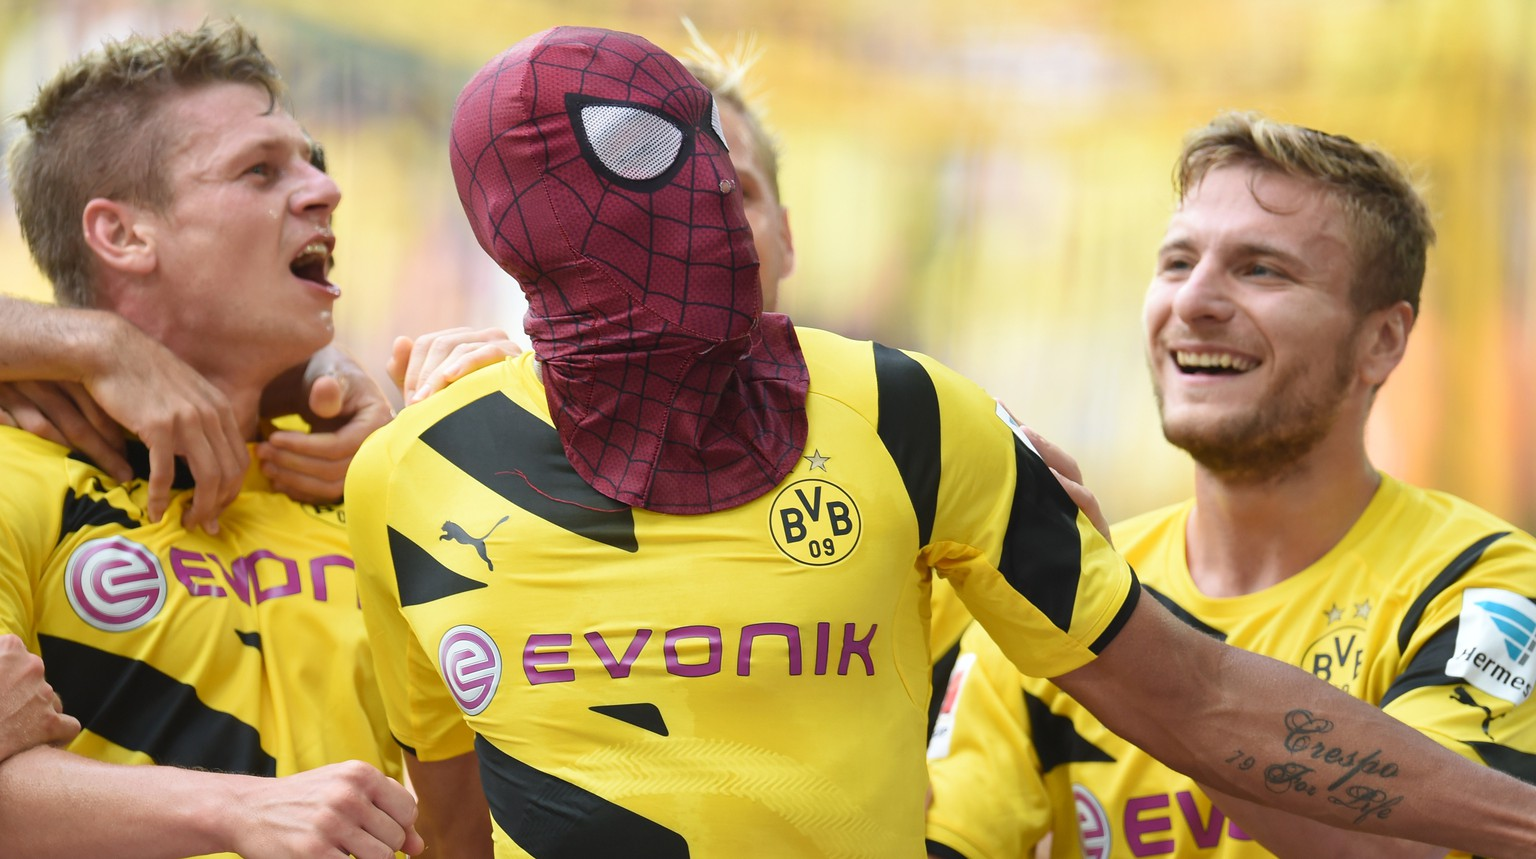 Dortmund's Italian striker Circo Immobile (R), Dortmund's Polish defender Lukasz Piszczek (L) celebrate after Dortmund's Gabonese striker Pierre-Emerick Aubameyang, who put on a Spiderman mark, scored the 2-0 goal during the German Supercup football match Borussia Dortmund vs Bayern Munich in the German city of Dortmund on August 13, 2014. AFP PHOTO / PATRIK STOLLARZ